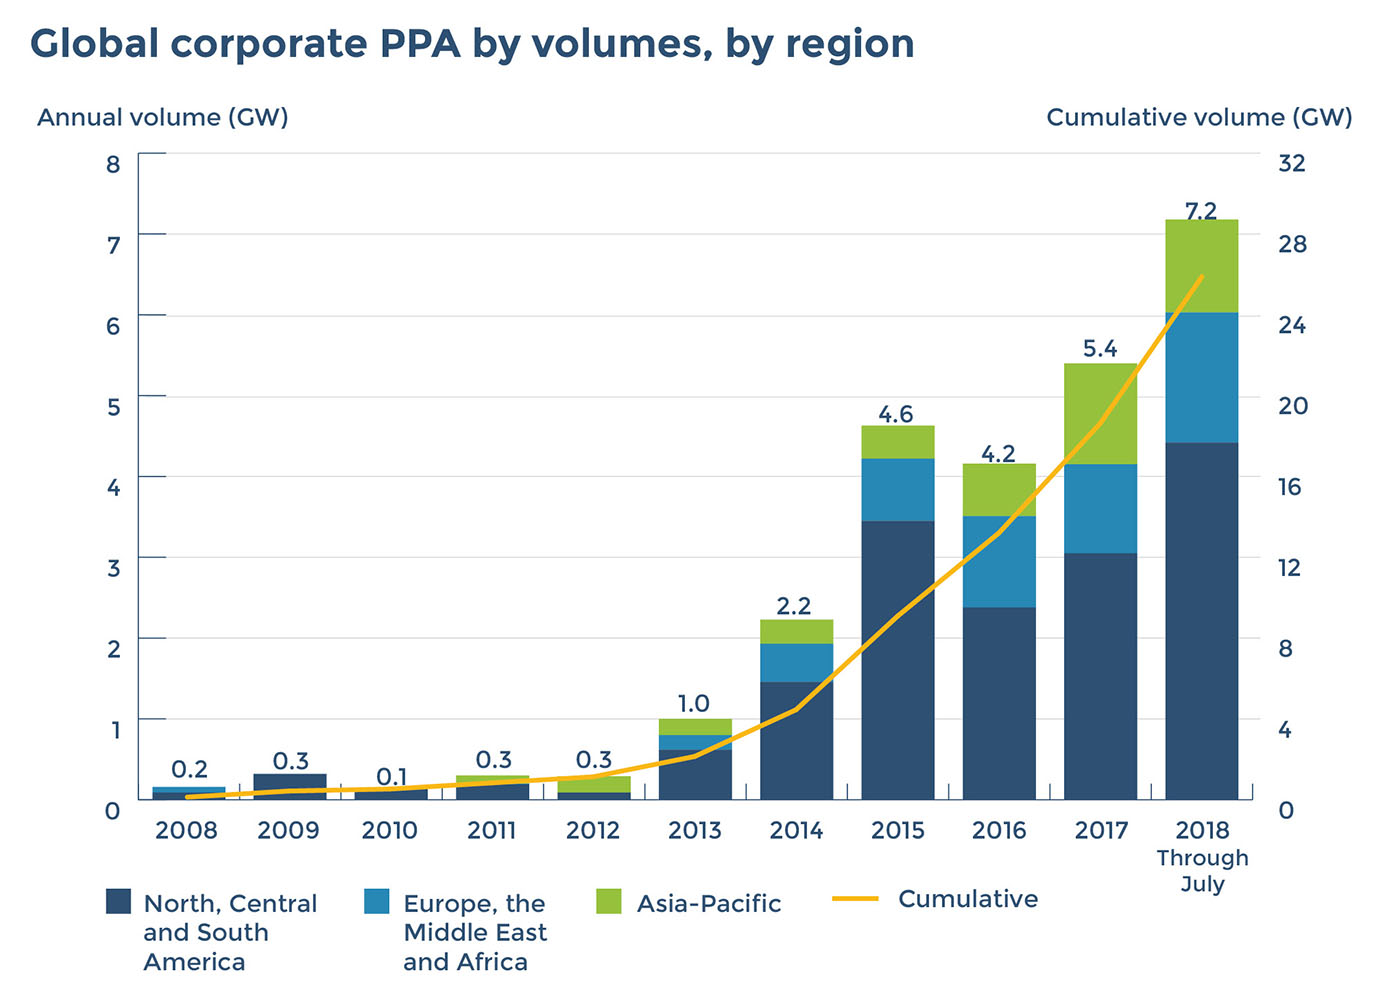 """Source: Bloomberg New Energy Finance, """"2H 2018 Corporate Energy Market Outlook,"""" August 2018.  Notes: Data is through July 2018. Onsite PPAs not included. APAC number is an estimate. Pre–market reform Mexico PPAs are not included. These figures are subject to change and may be updated as more information is made available."""